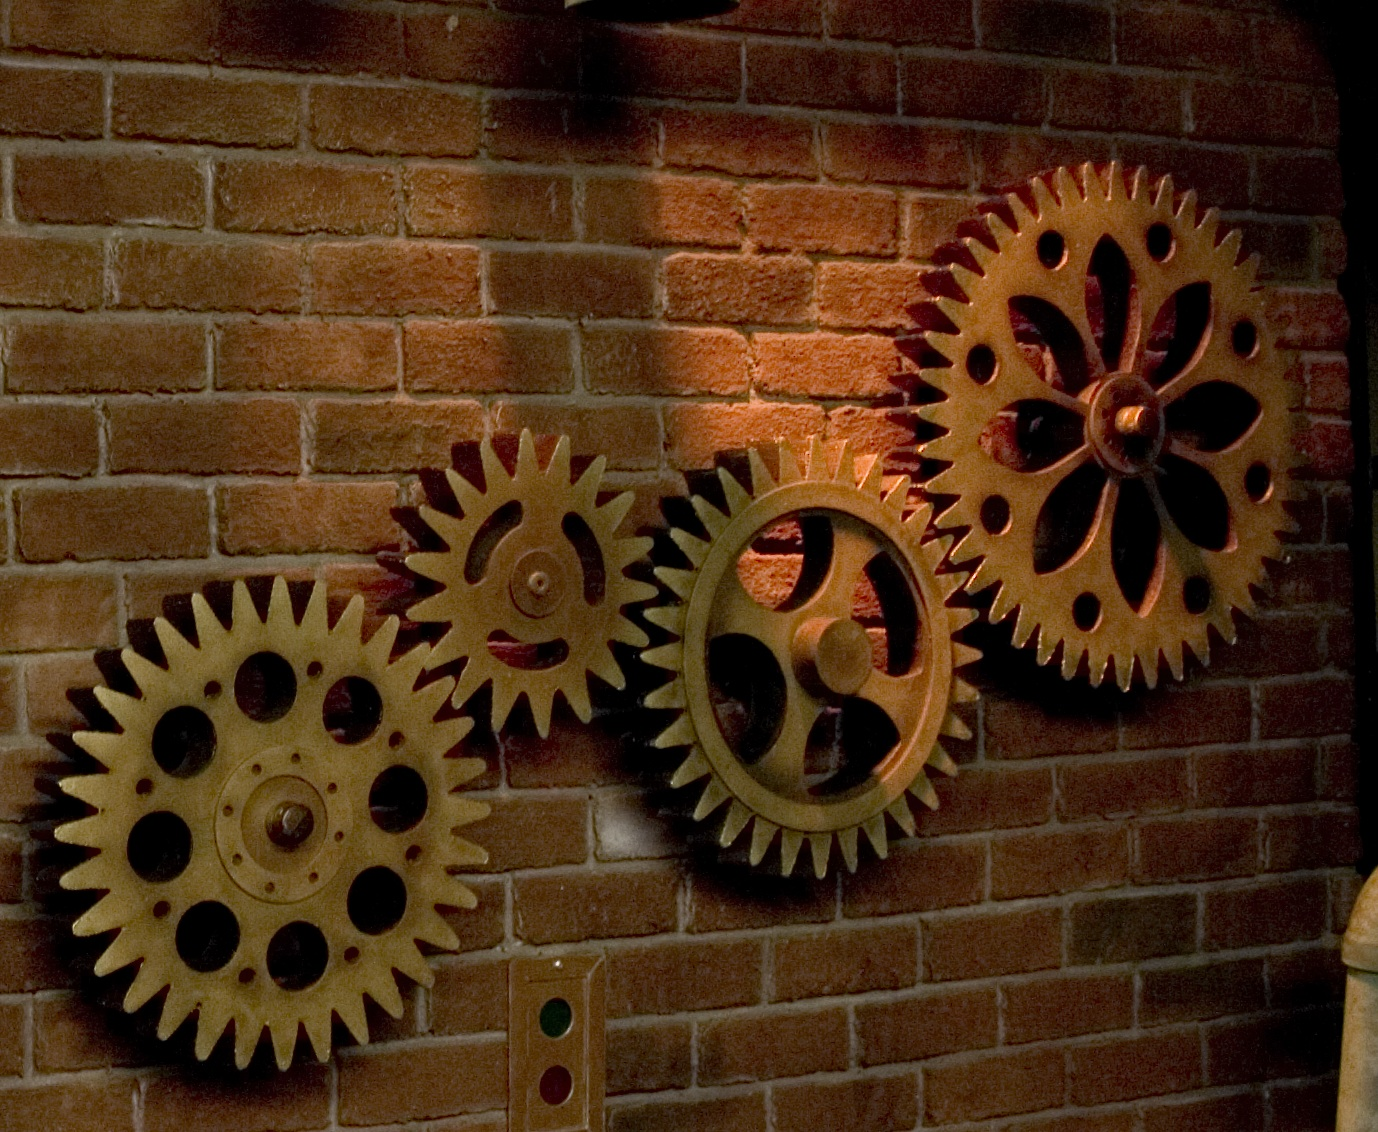 Wall Decor Gears : The art of faking it stage design themed rooms props